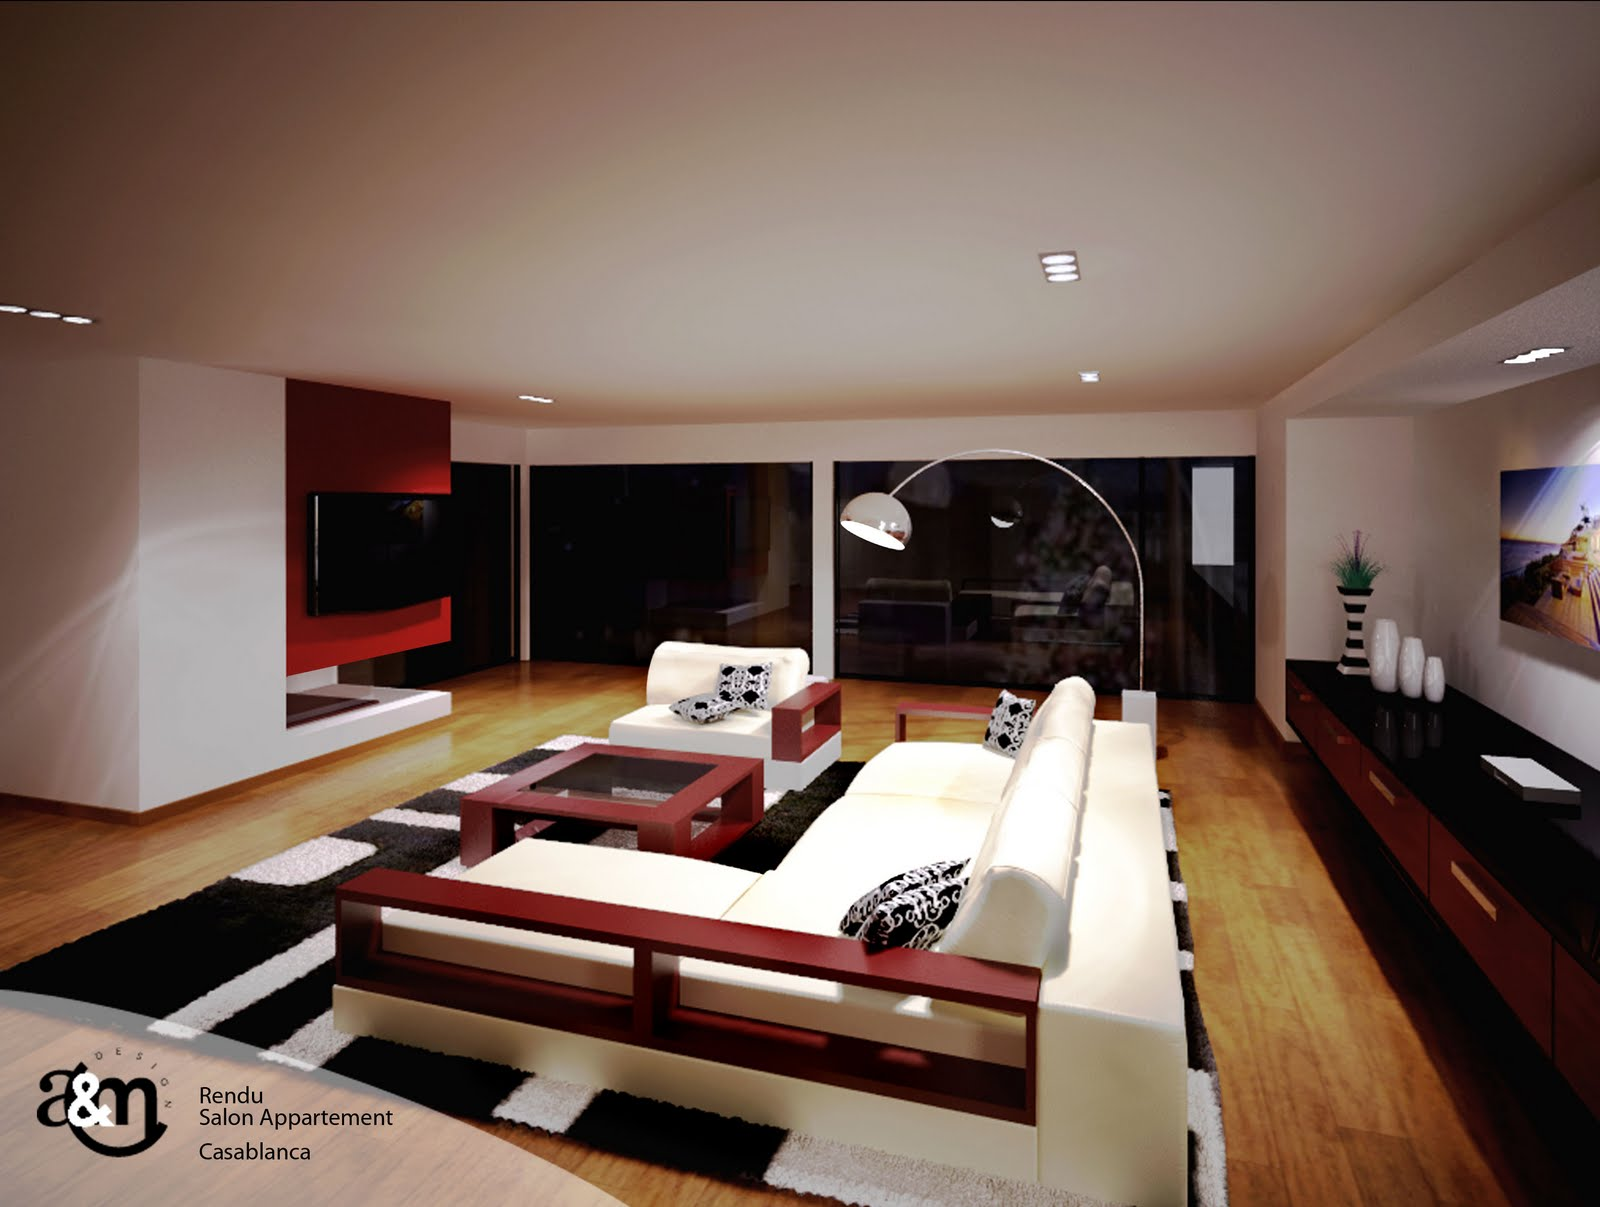 A m design architecture d 39 interieur design agencement for Designer interieur